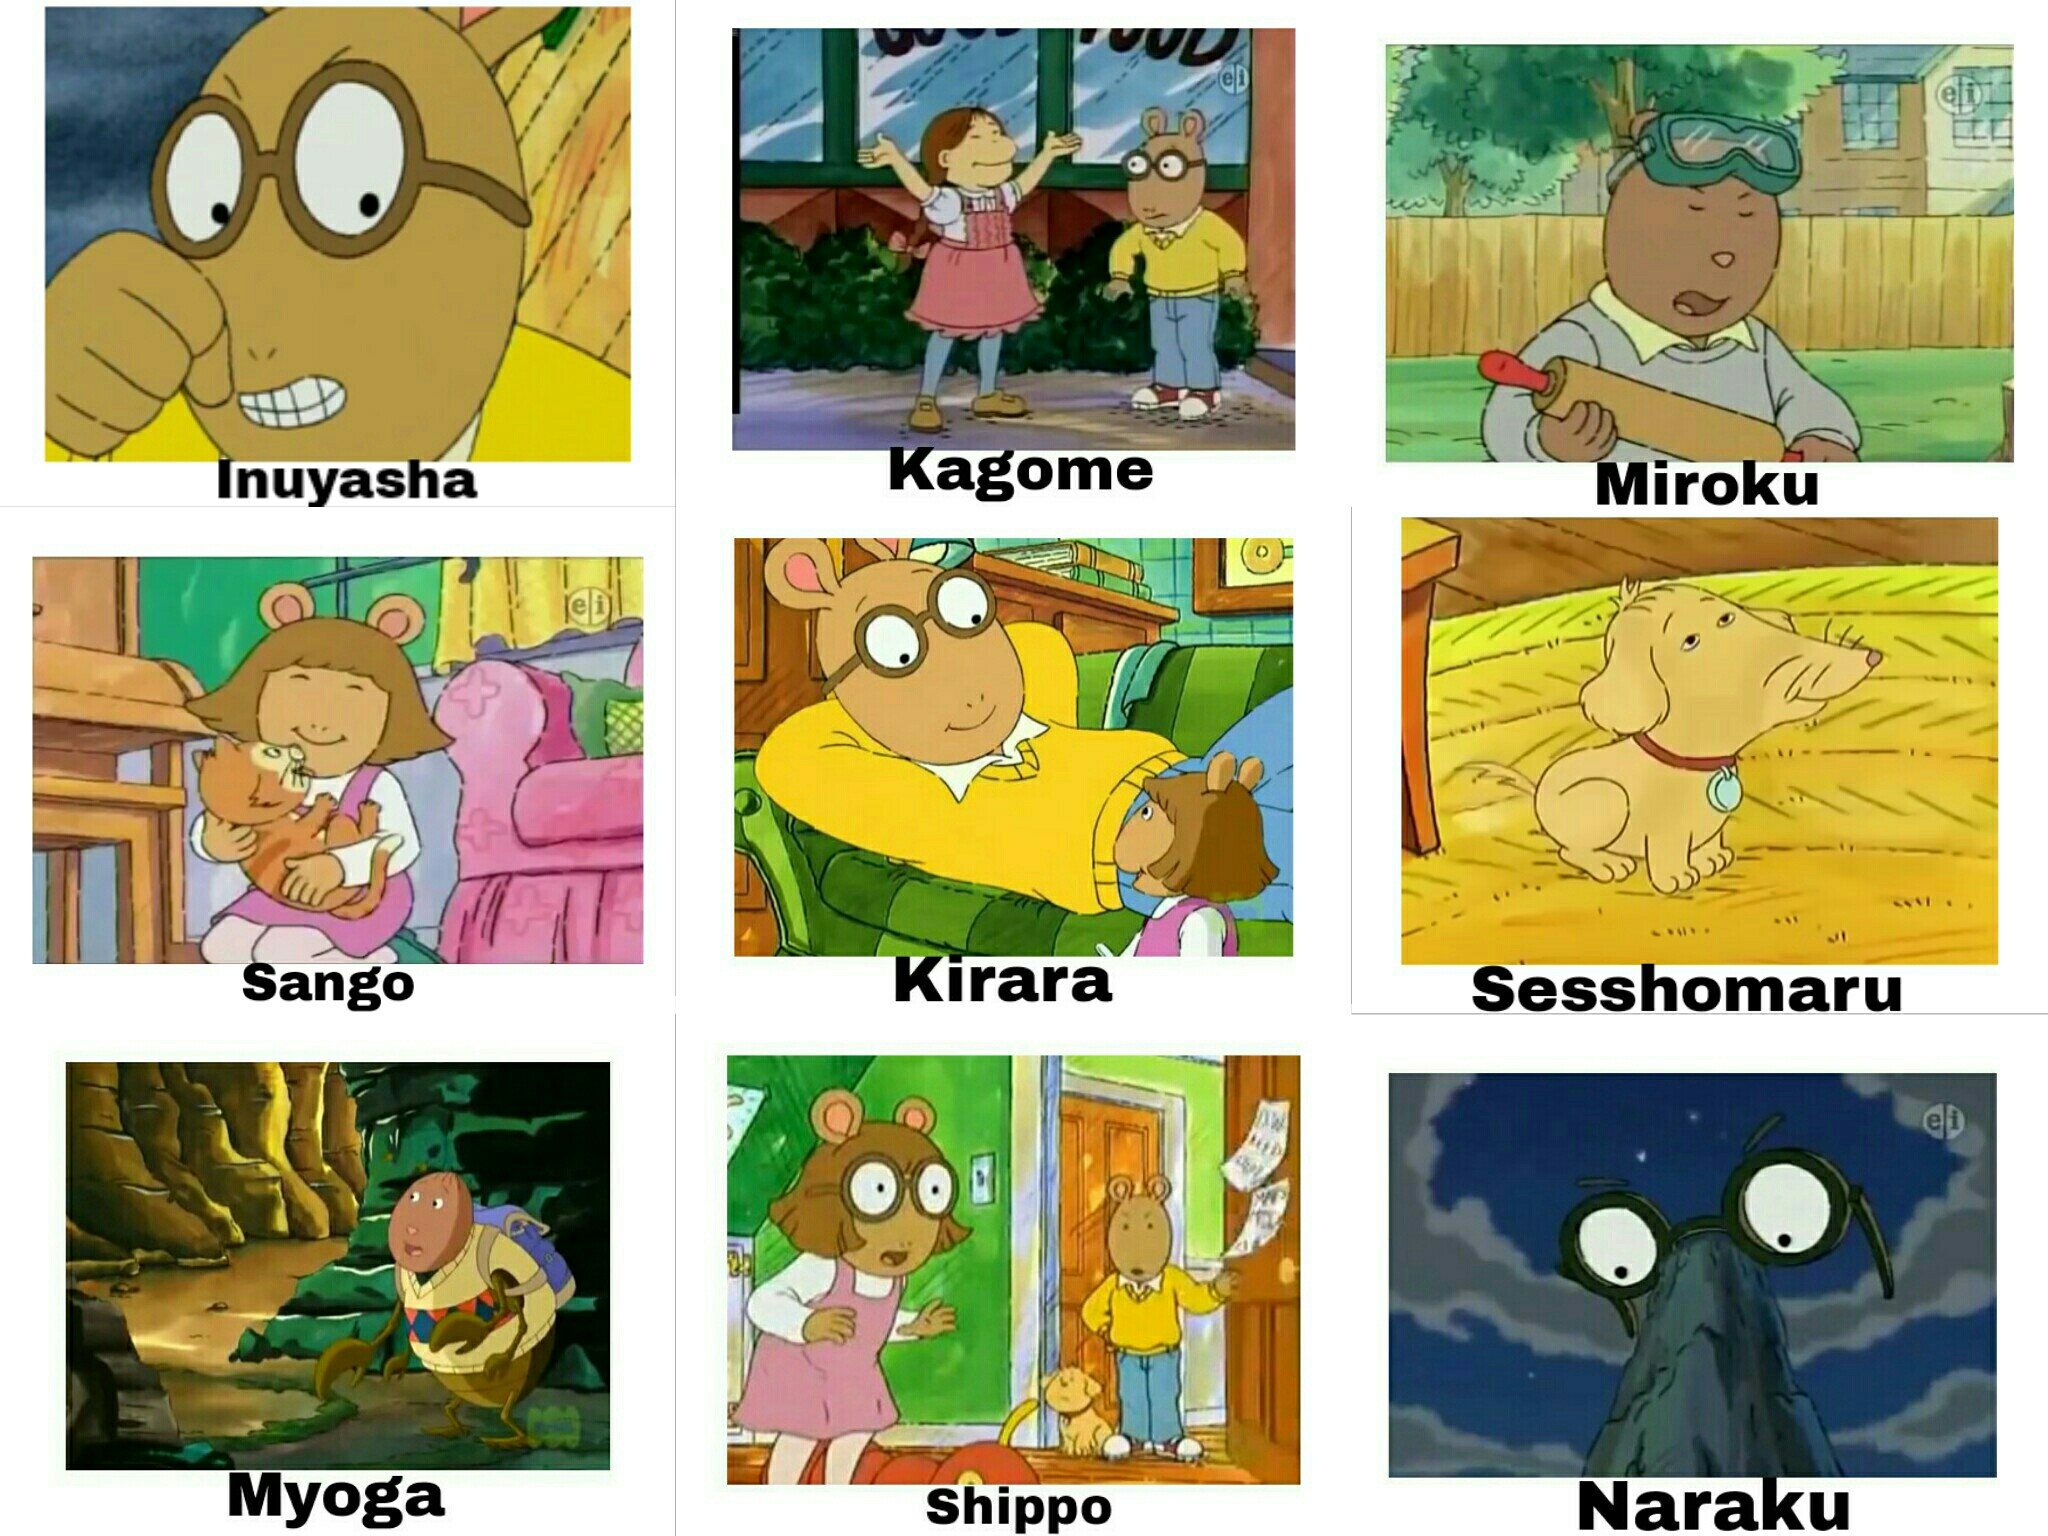 Inuyasha Characters Compared To Arthur Spongebob Comparison Charts